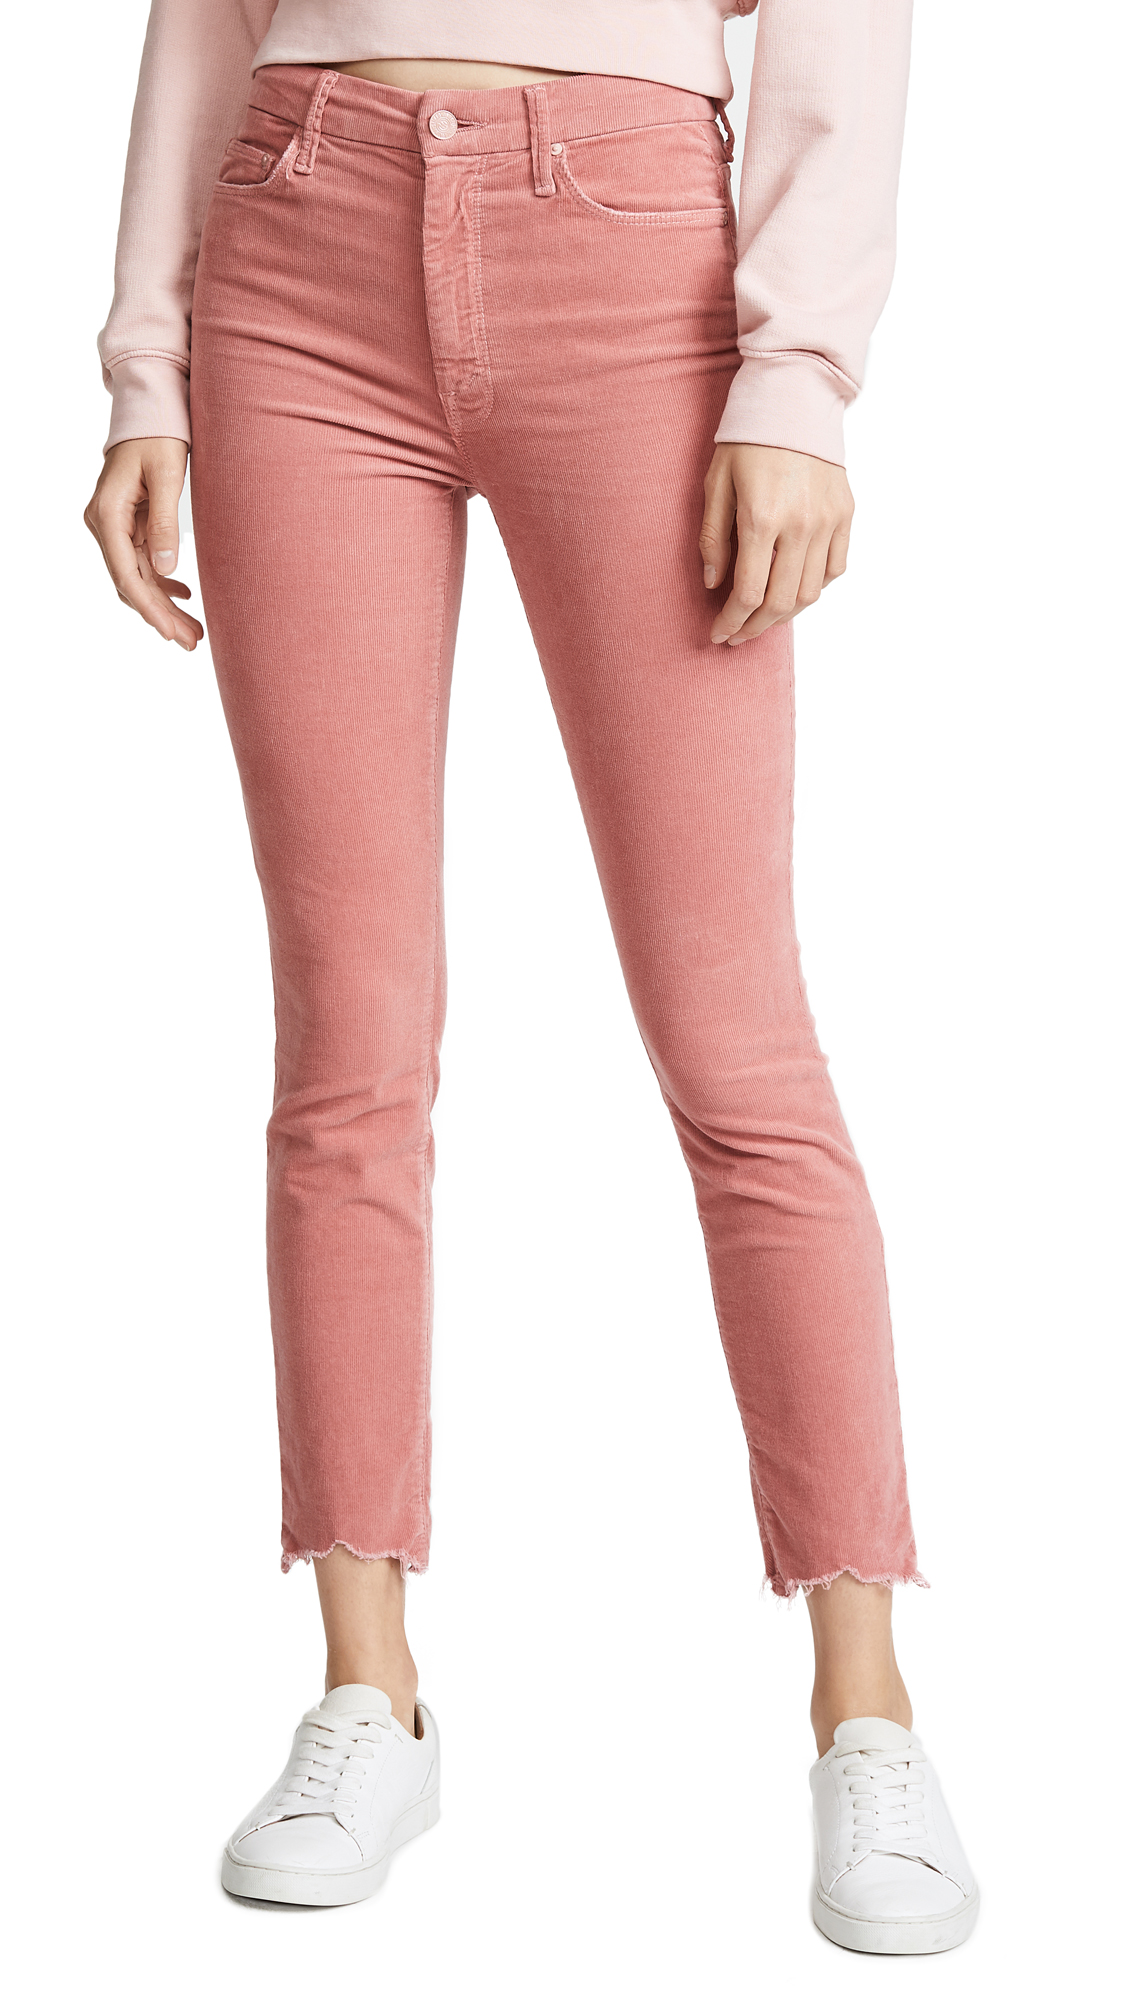 HIGH WAISTED LOOKER ANKLE CHEW PANTS